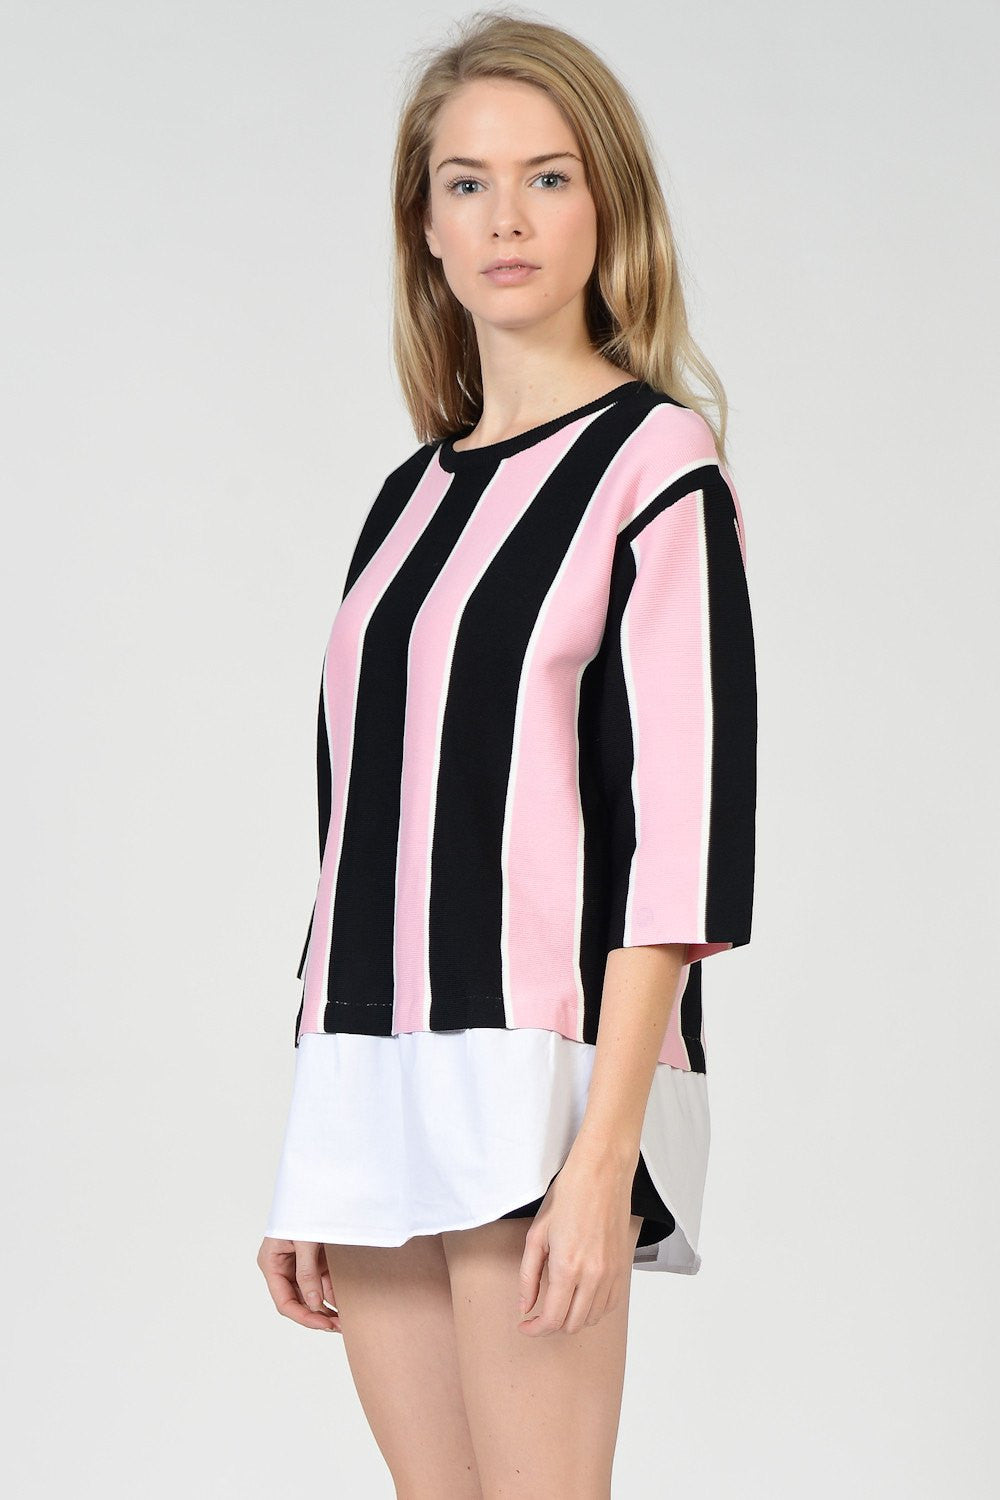 Pink X Black Vertical Stripes Knit Sweater